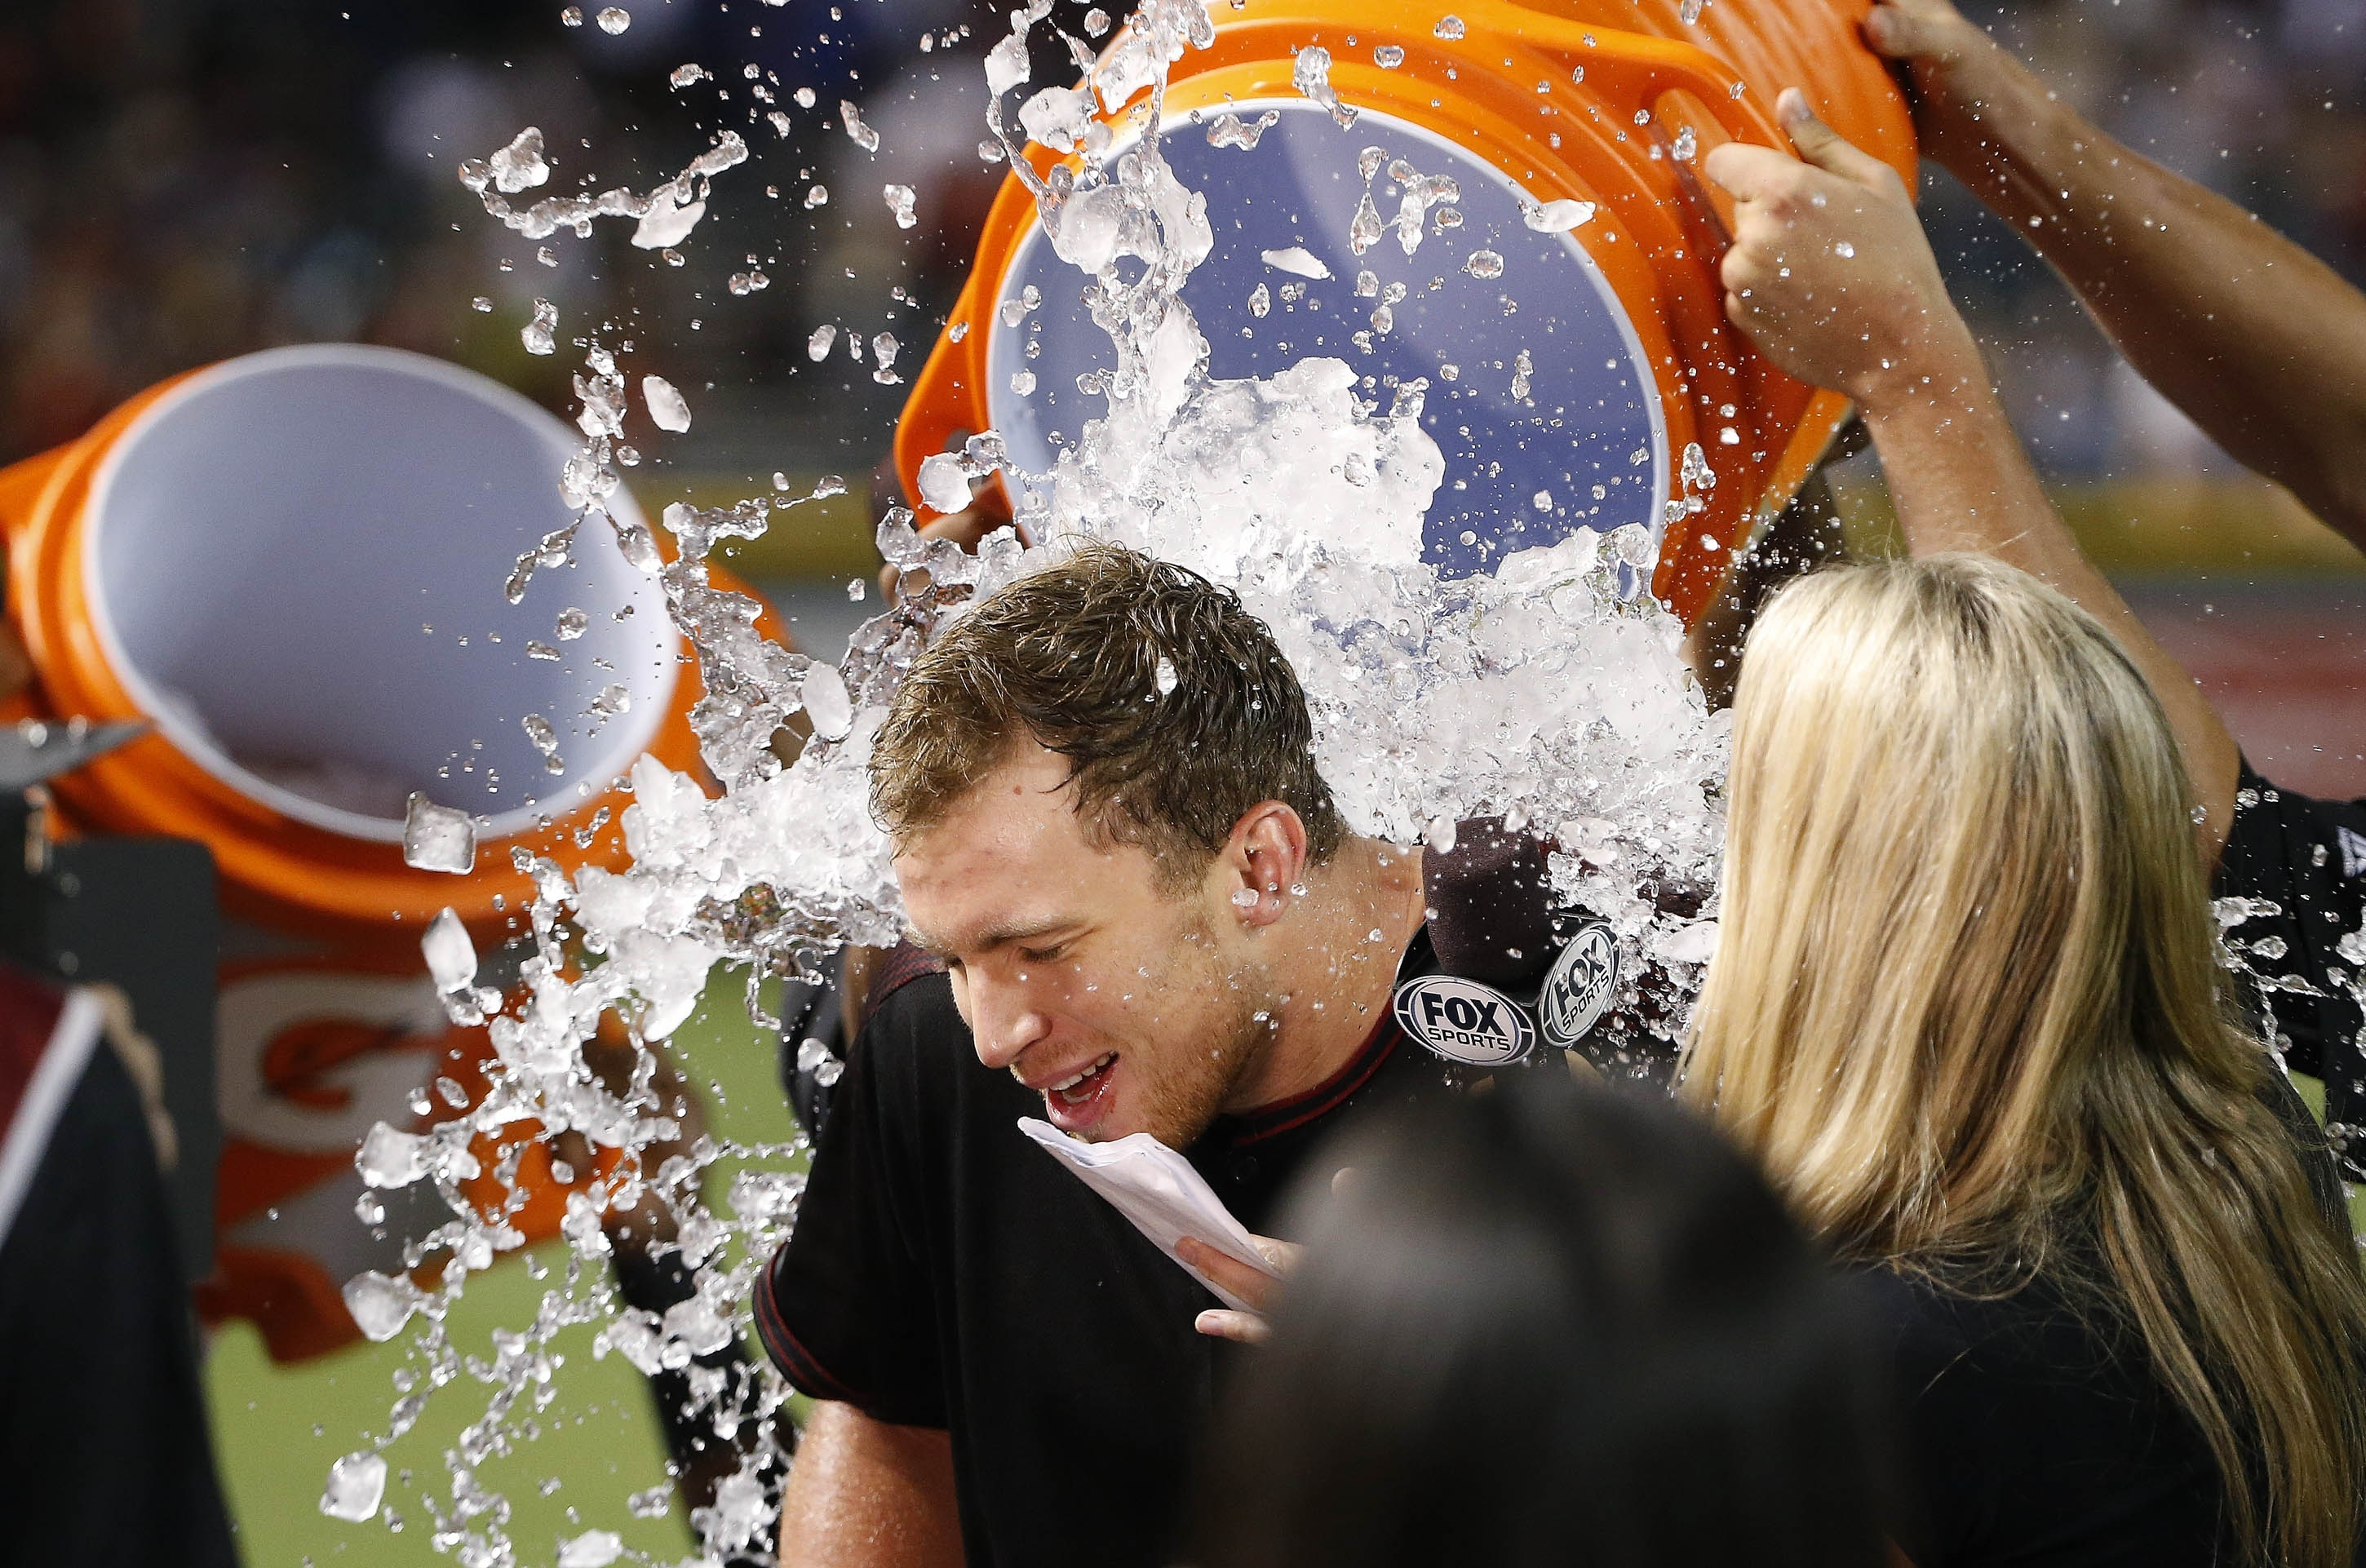 Arizona Diamondbacks' Brandon Drury is doused as teammates celebrate his game-winning single against the Los Angeles Dodgers in the 12th inning of a baseball game Saturday, July 16, 2016, in Phoenix. The Diamondbacks defeated the Dodgers 2-1. (AP Photo/Ro